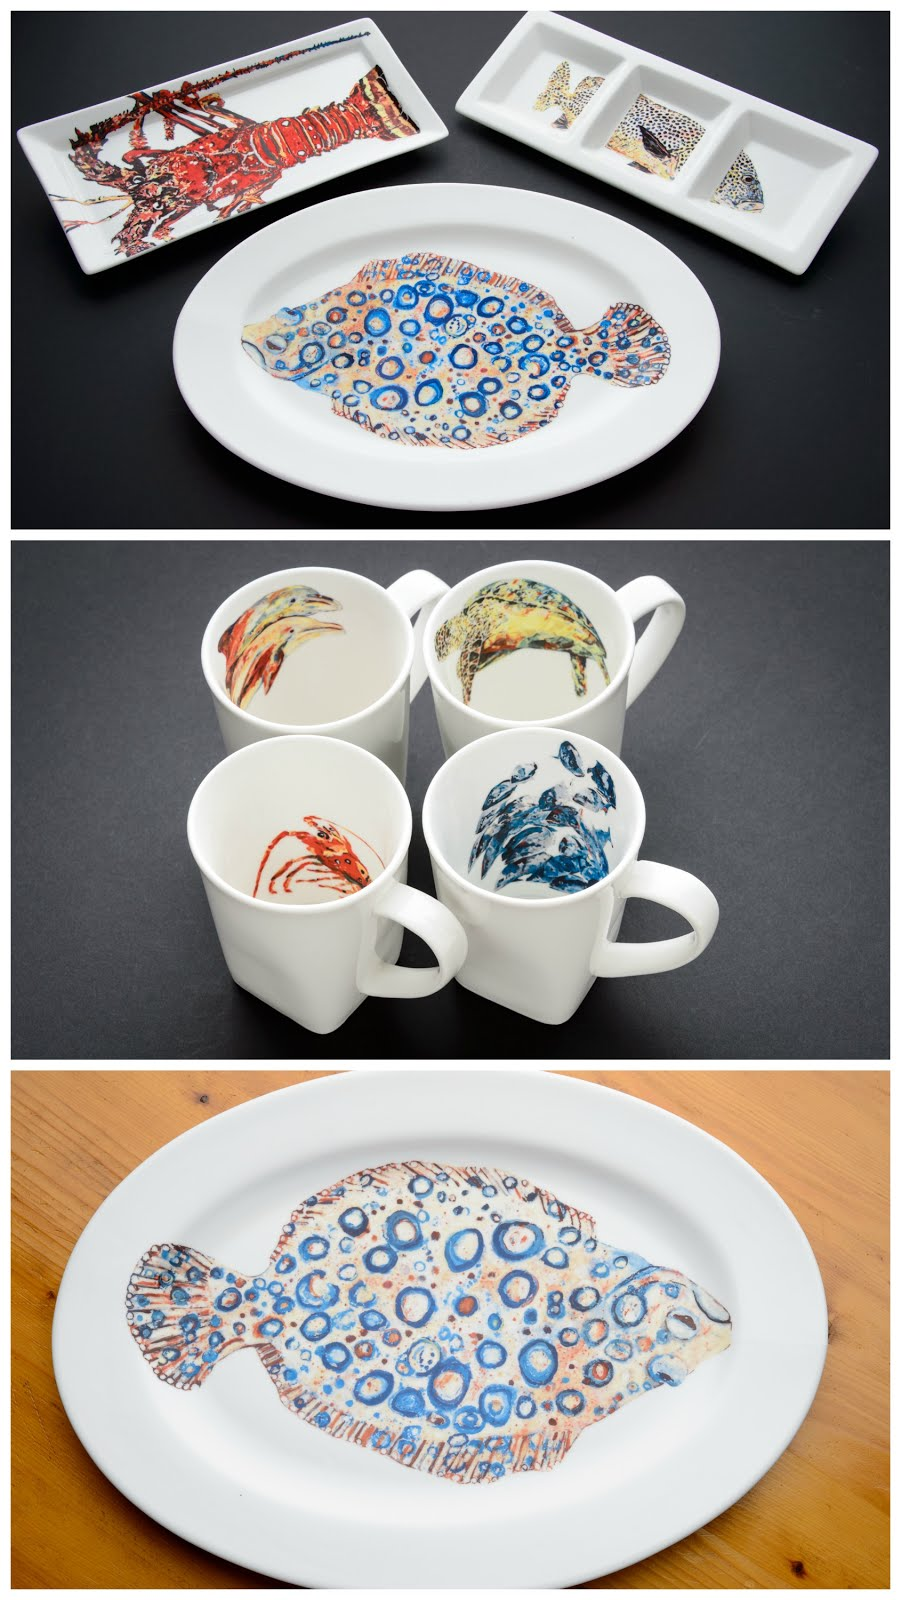 Dishes with Fishes!